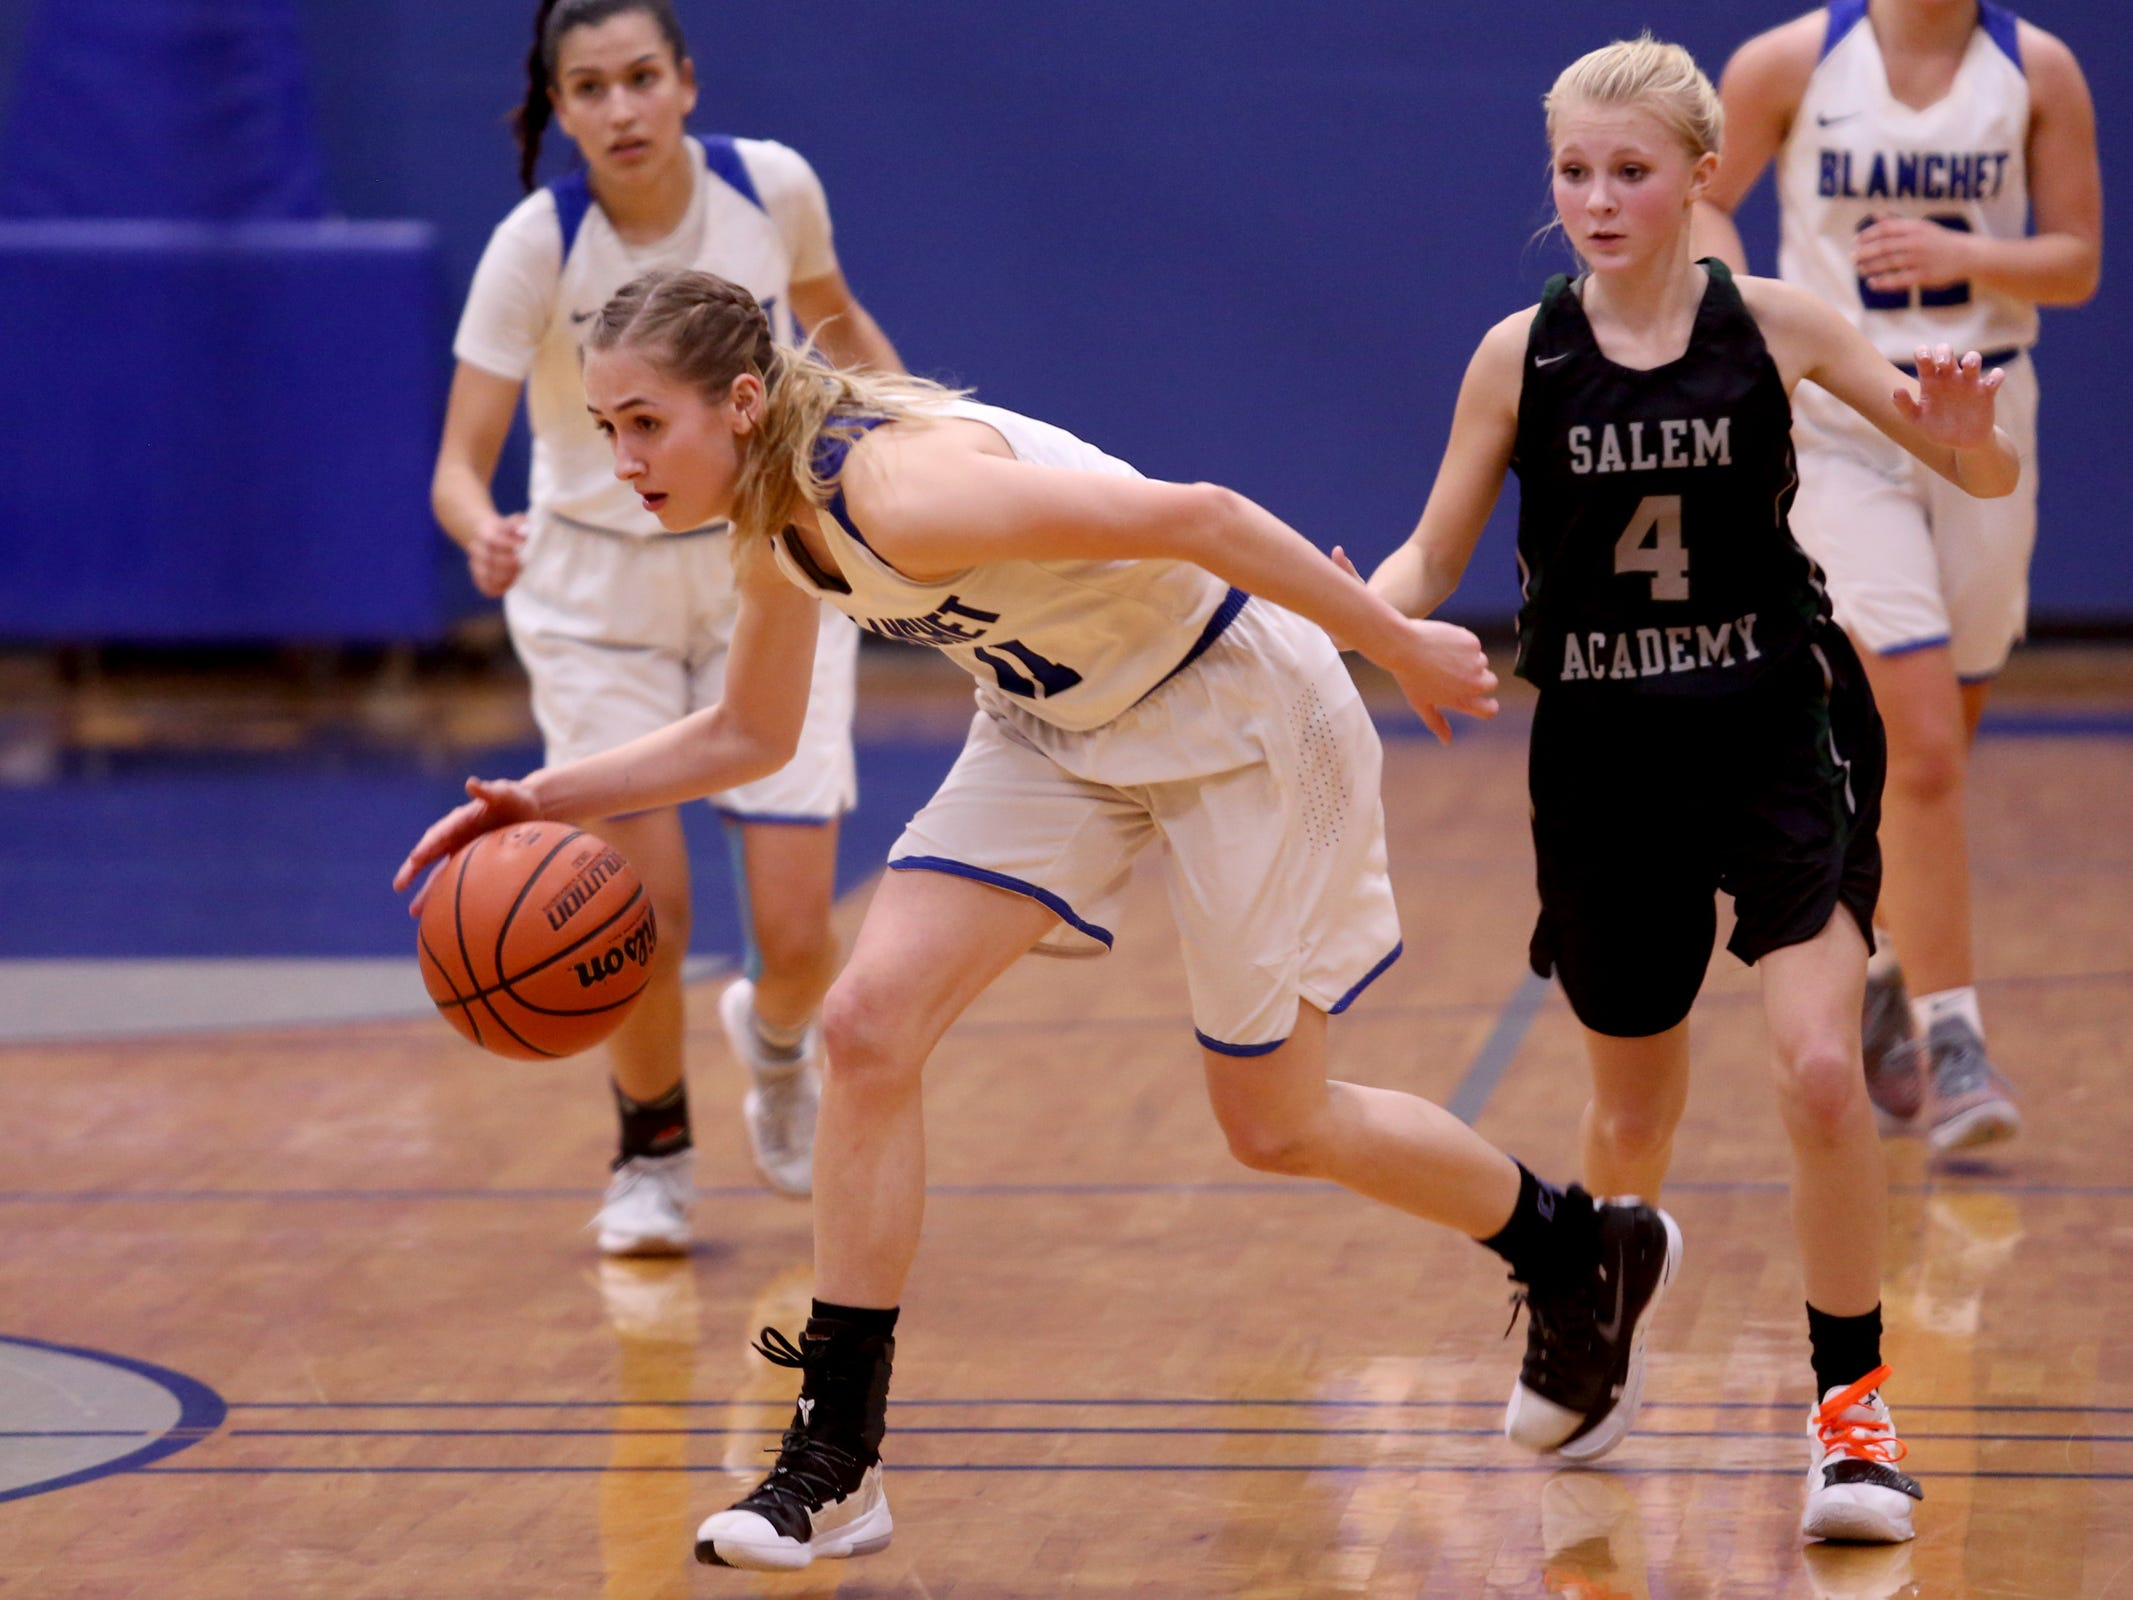 Blanchet Catholic's Trinity Phipps (11) claims  the loose ball in the second half of the Salem Academy vs. Blanchet Catholic girls basketball game at Blanchet Catholic School in Salem on Friday, Jan. 18, 2019. Blanchet Catholic won the gam 48-40.